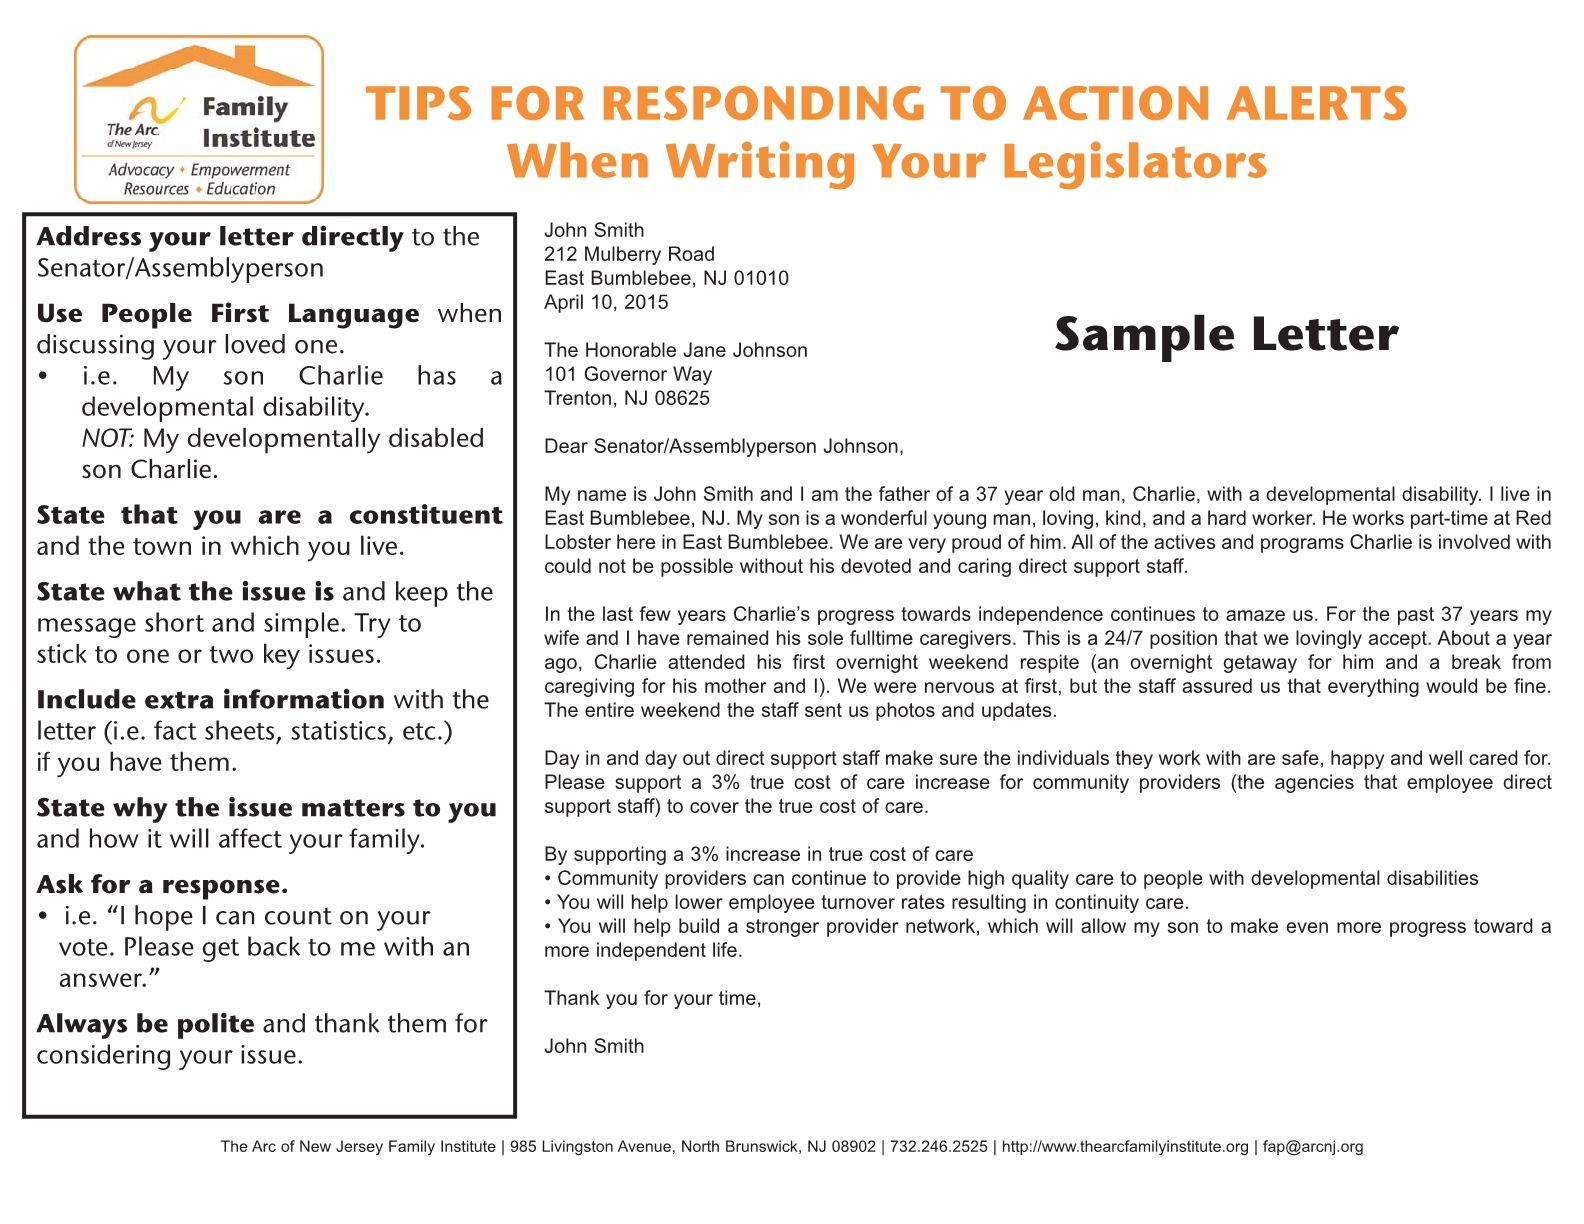 Tips for responding to action alerts when writing